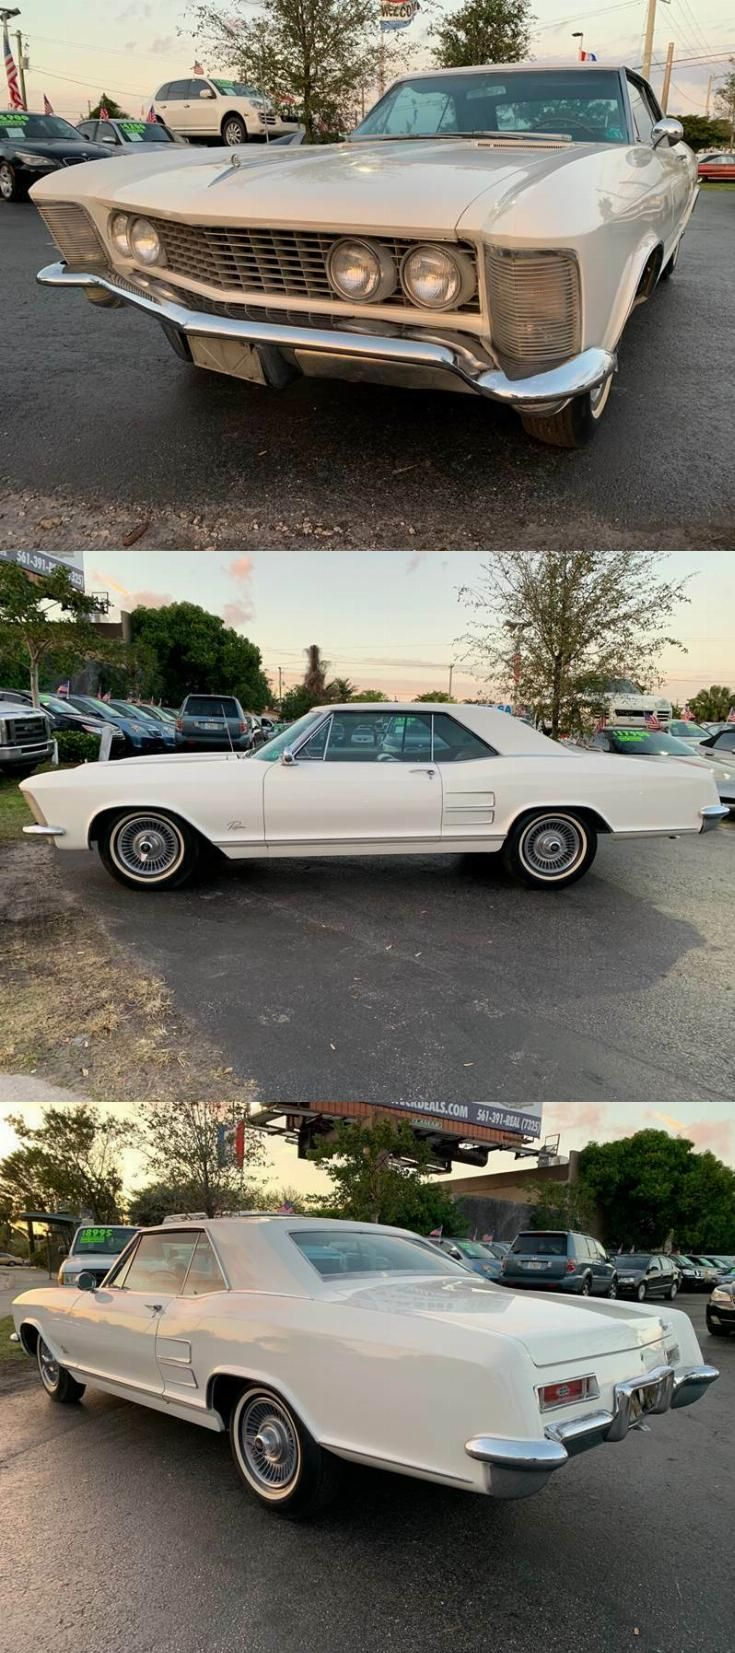 1964 Buick Riviera In 2020 Buick Riviera For Sale Buick Riviera Buick